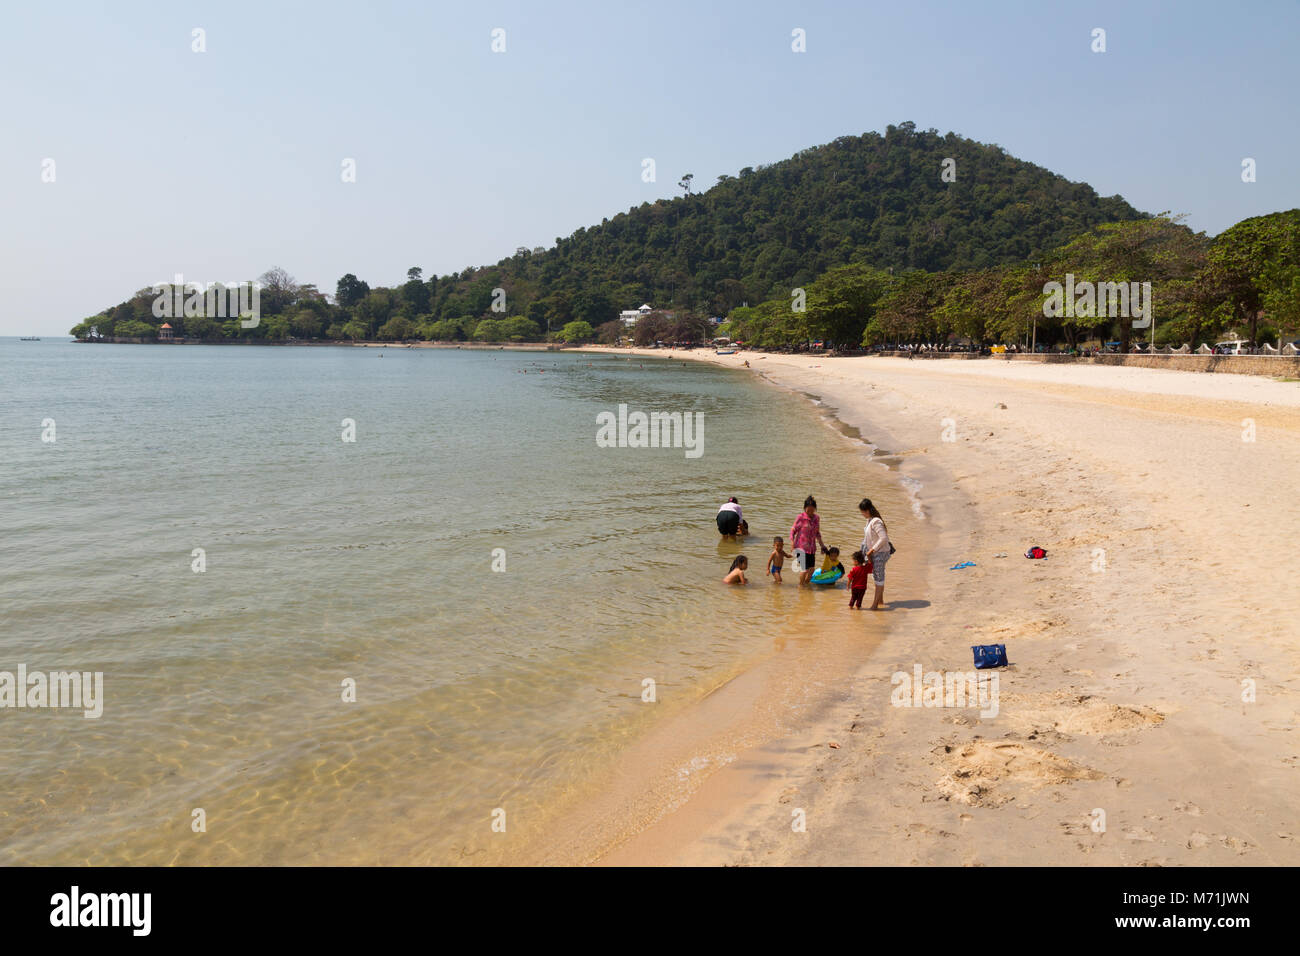 Local people on the beach, Kep Beach, Kep, Kampot province, Cambodia Asia - Stock Image